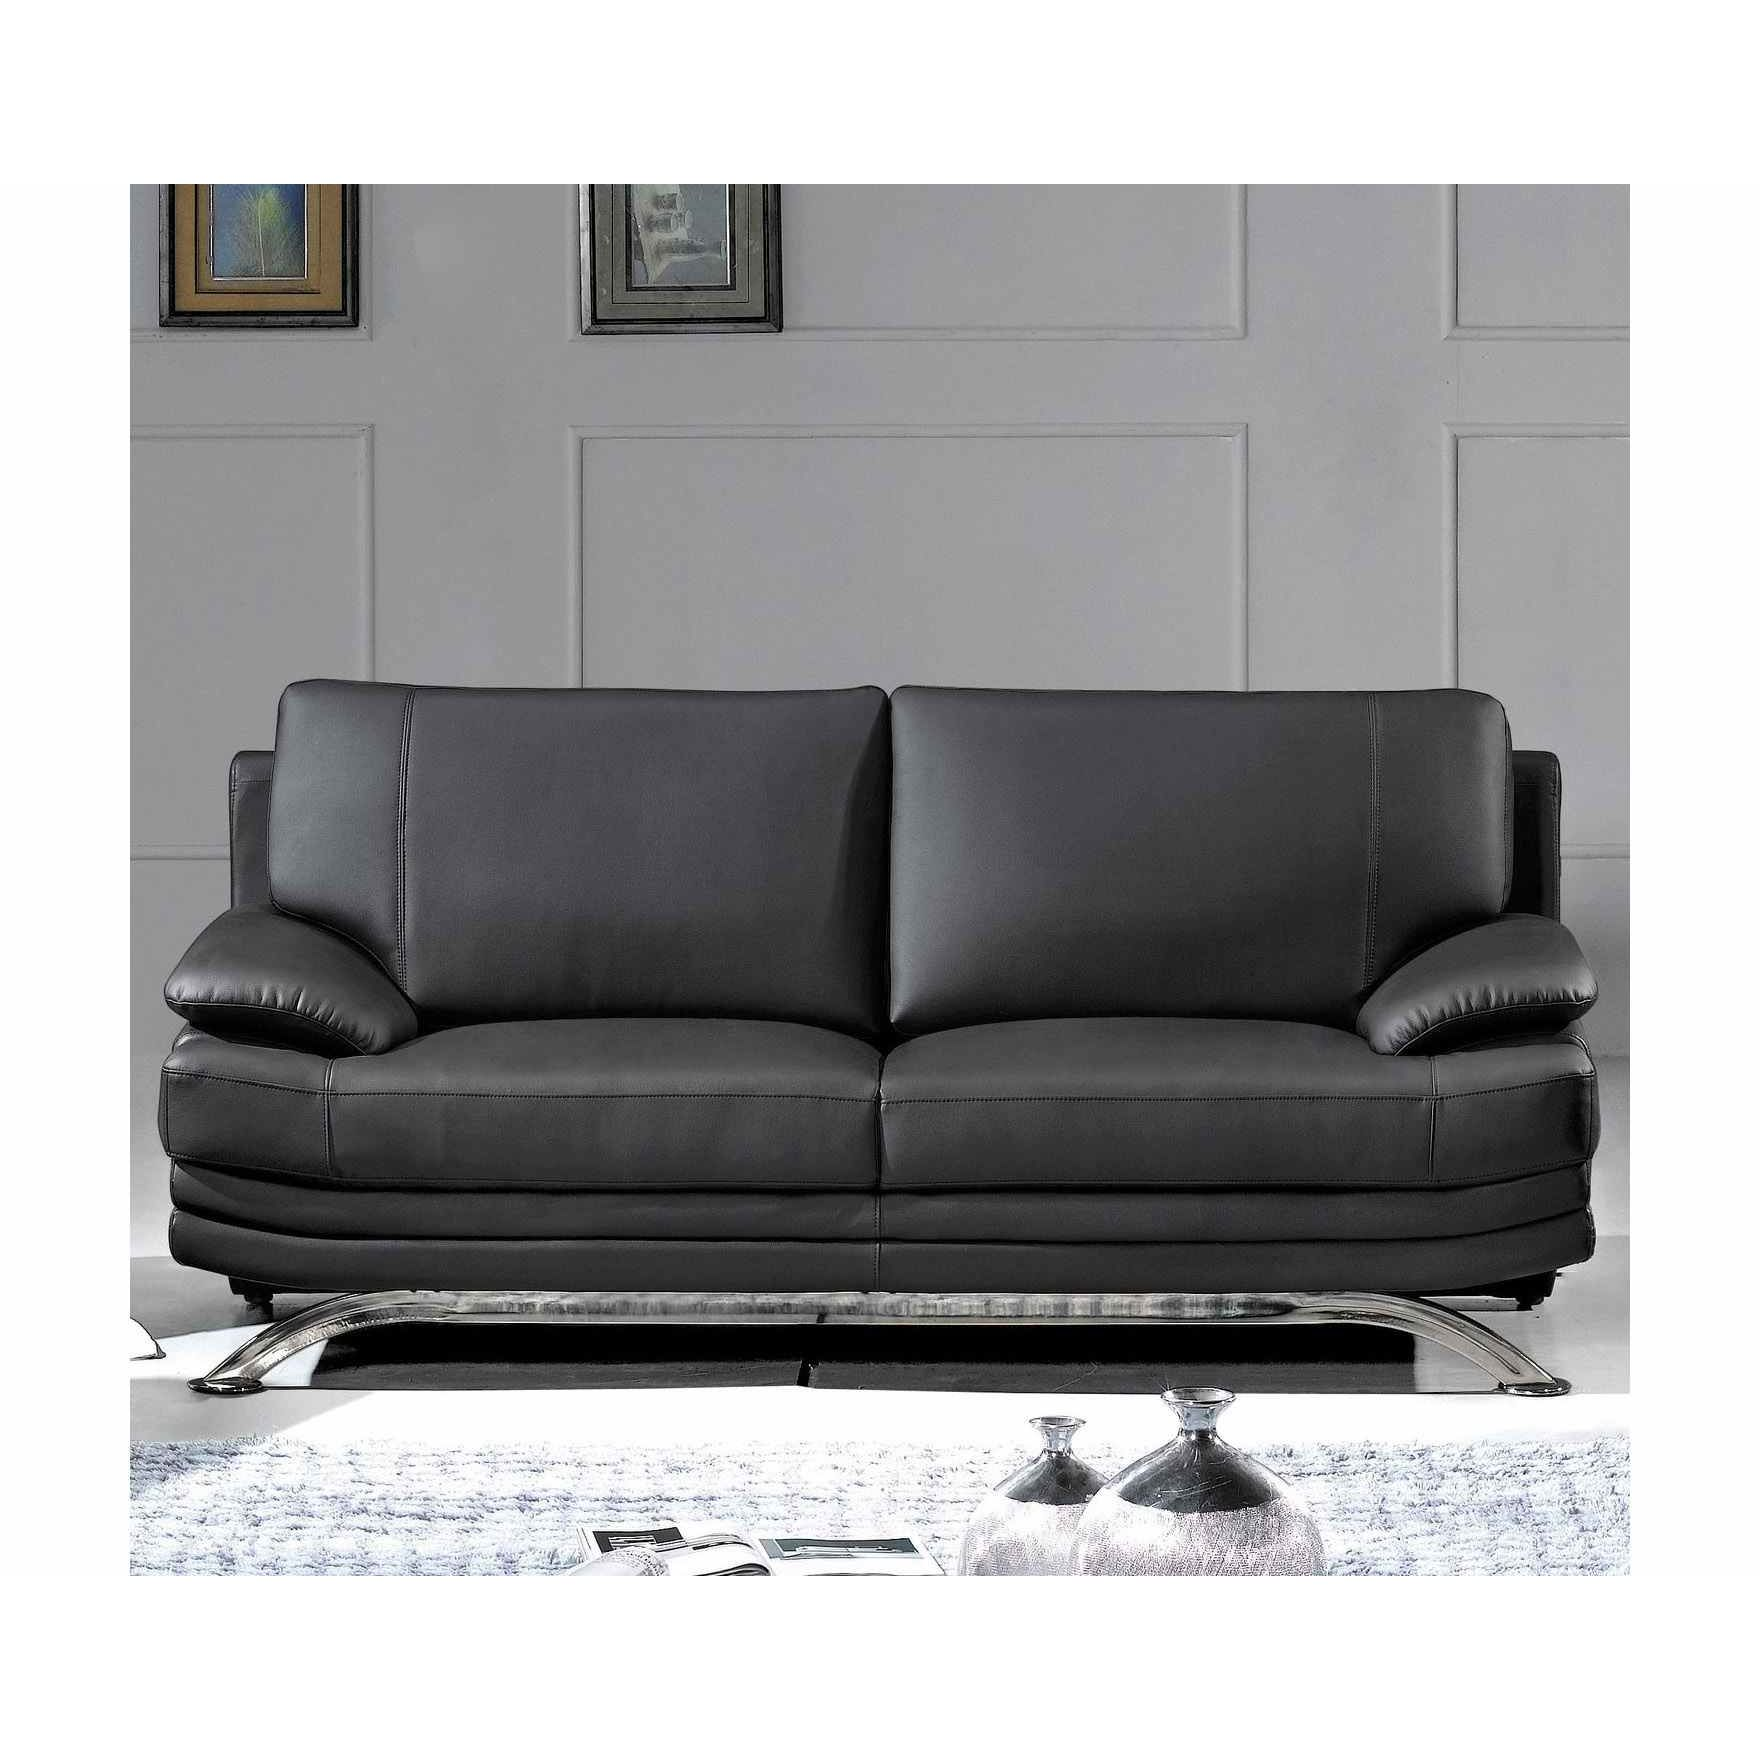 Deco in paris canape cuir noir 2 places romeo can romeo for Canape cuir noir